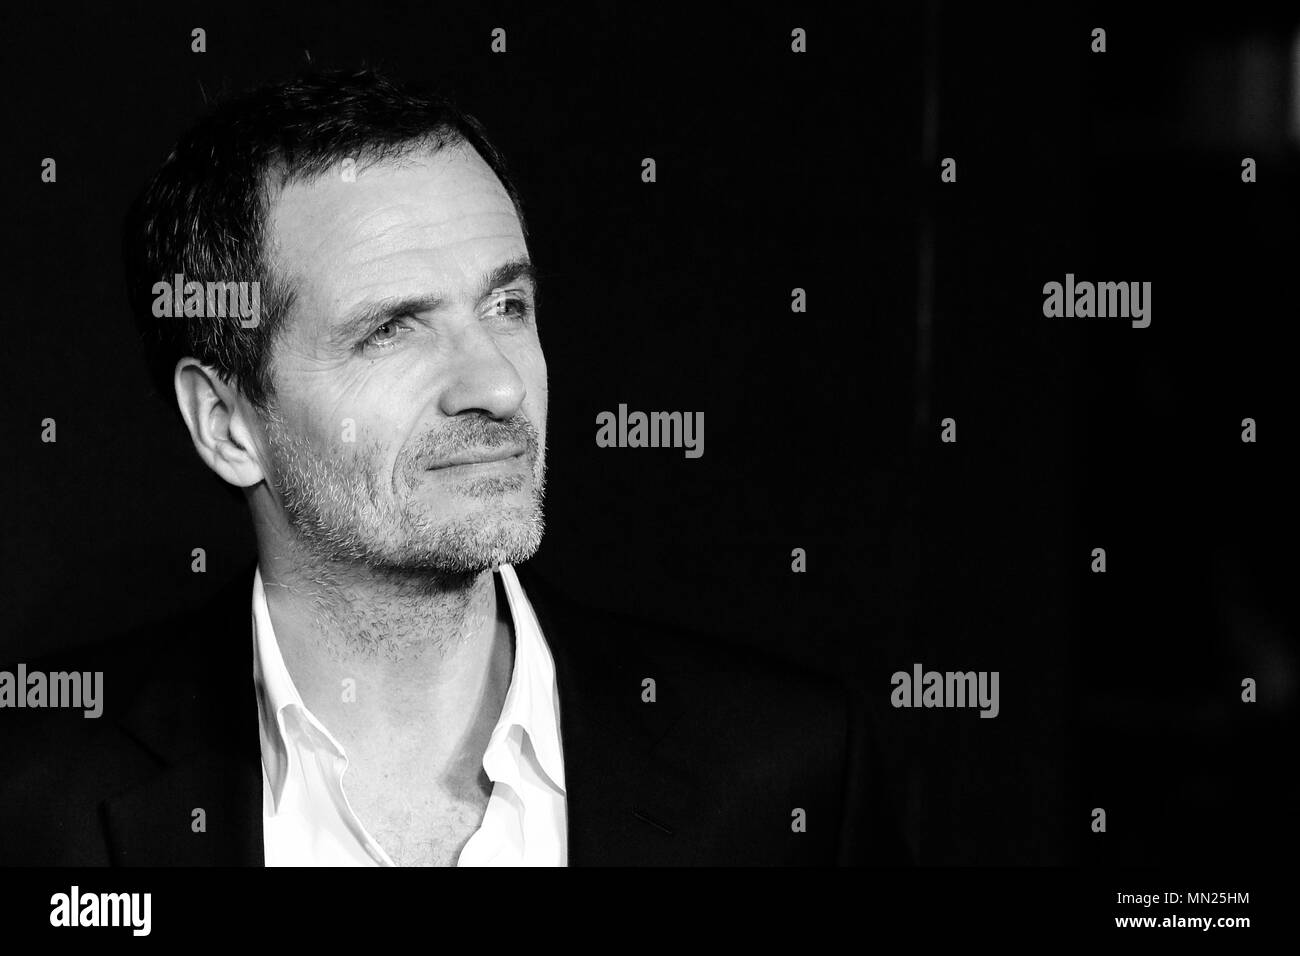 LONDON, ENGLAND - NOVEMBER 15: (Editors Note: Image Converted to Black and White) Director David Heyman attends the European premiere of 'Fantastic Beasts And Where To Find Them' at Odeon Leicester Square on November 15, 2016 in London, England. - Stock Image